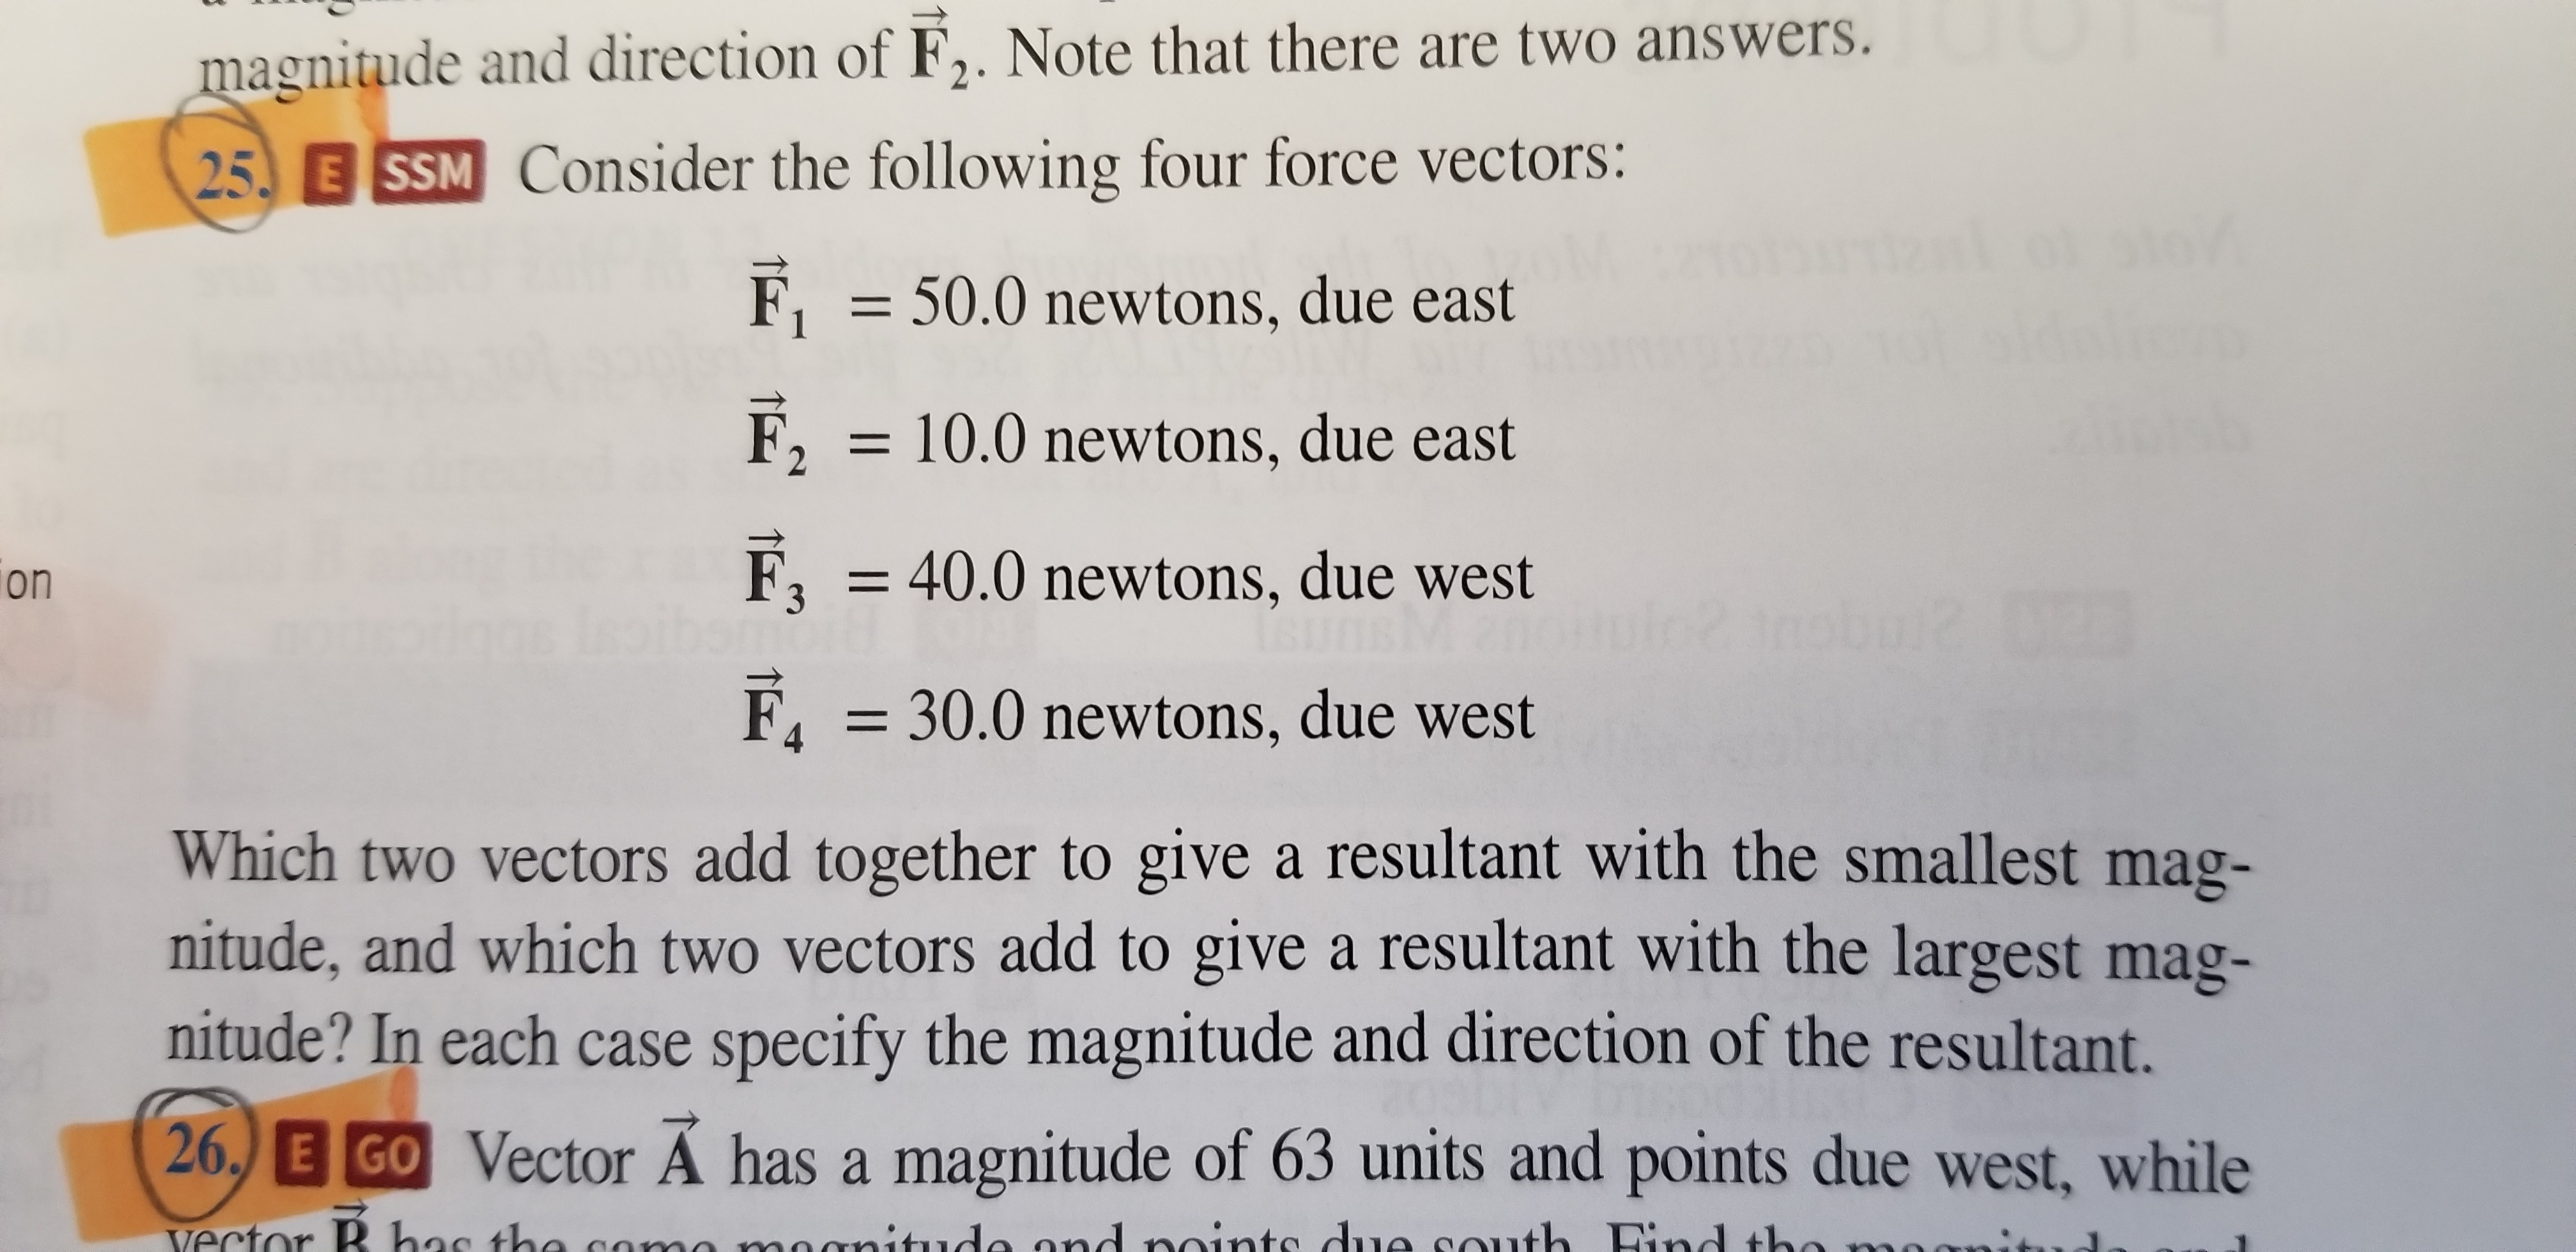 magnitude and direction of F2. Note that there are two answers. 25 E SSM Consider the following four force vectors: F150.0 newtons, due east F210.0 newtons, due east F3 40.0 newtons, due west F, 30.0 newtons, due west on Which two vectors add together to give a resultant with the smallest mag- nitude, and which two vectors add to give a resultant with the largest mag- nitude? In each case specify the magnitude and direction of the resultant. 26, E GO Vector Ä has a magnitude of 63 units and points due west, while